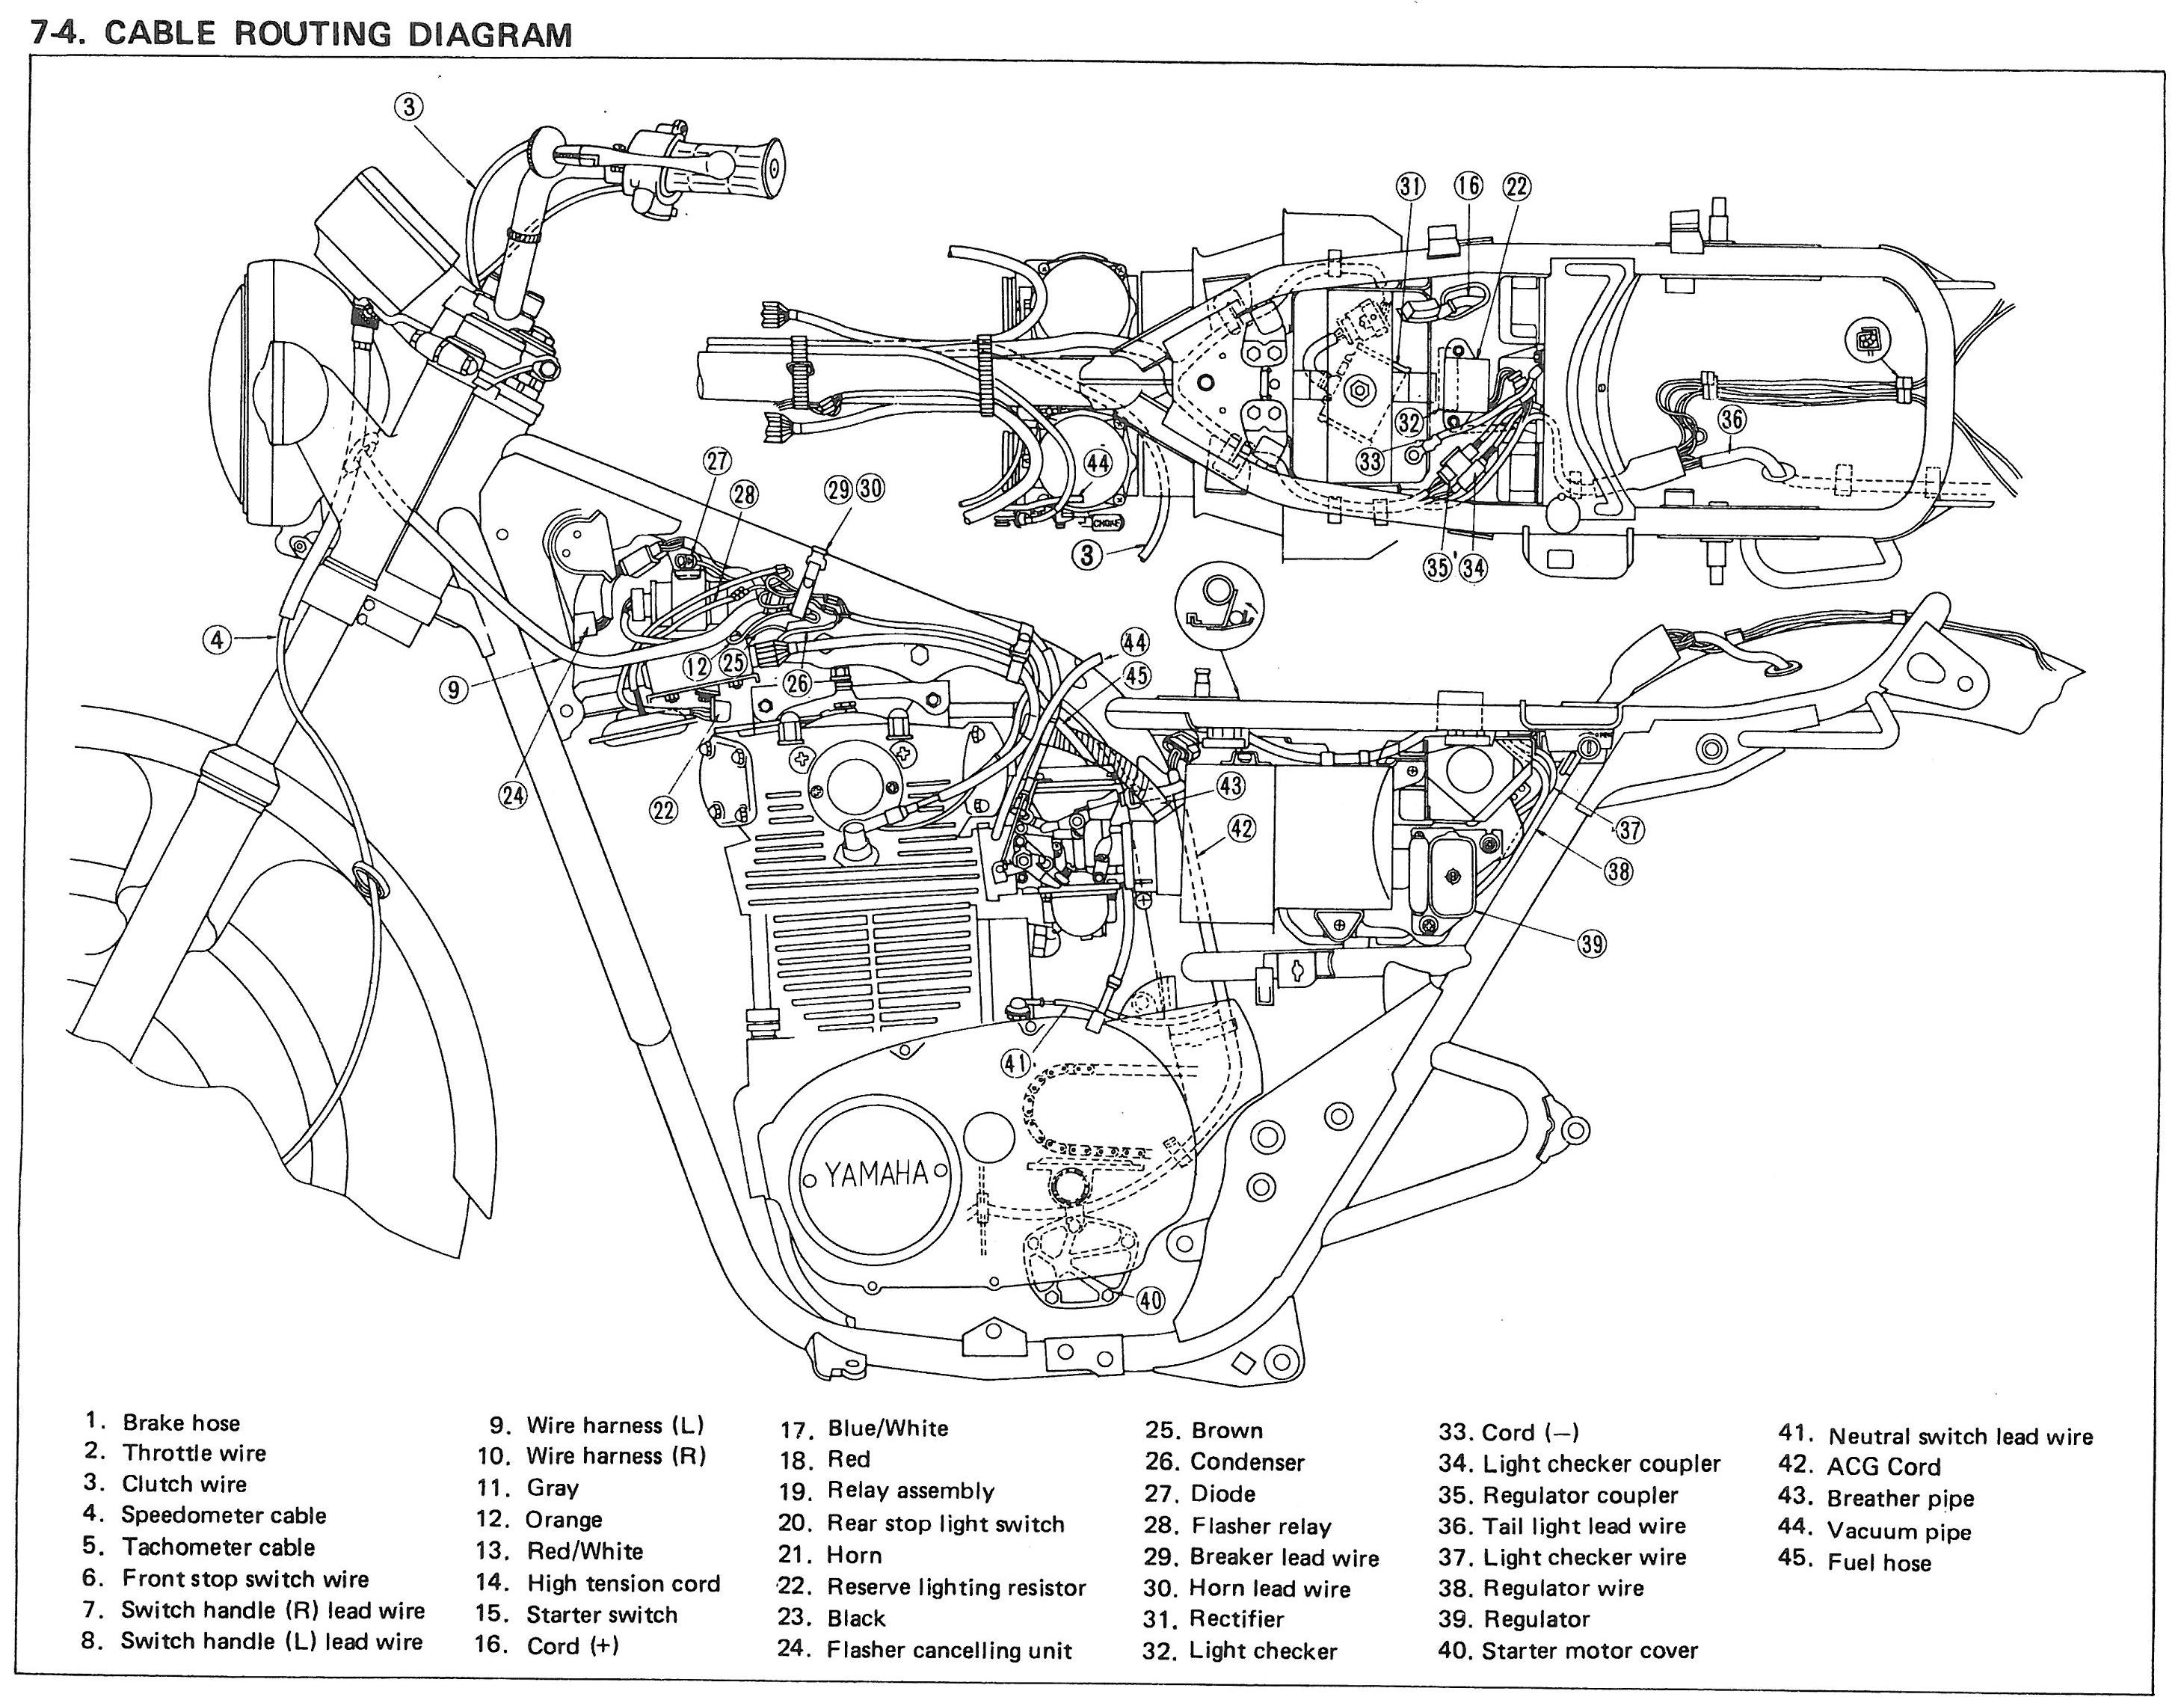 xs650 wiring harness routing example electrical wiring diagram \u2022 stock xs650 wiring harness diagram xs650 78 xs e se wiring thexscafe rh thexscafedotcom wordpress com 1975 xs650 wiring diagram 1975 xs650 wiring diagram